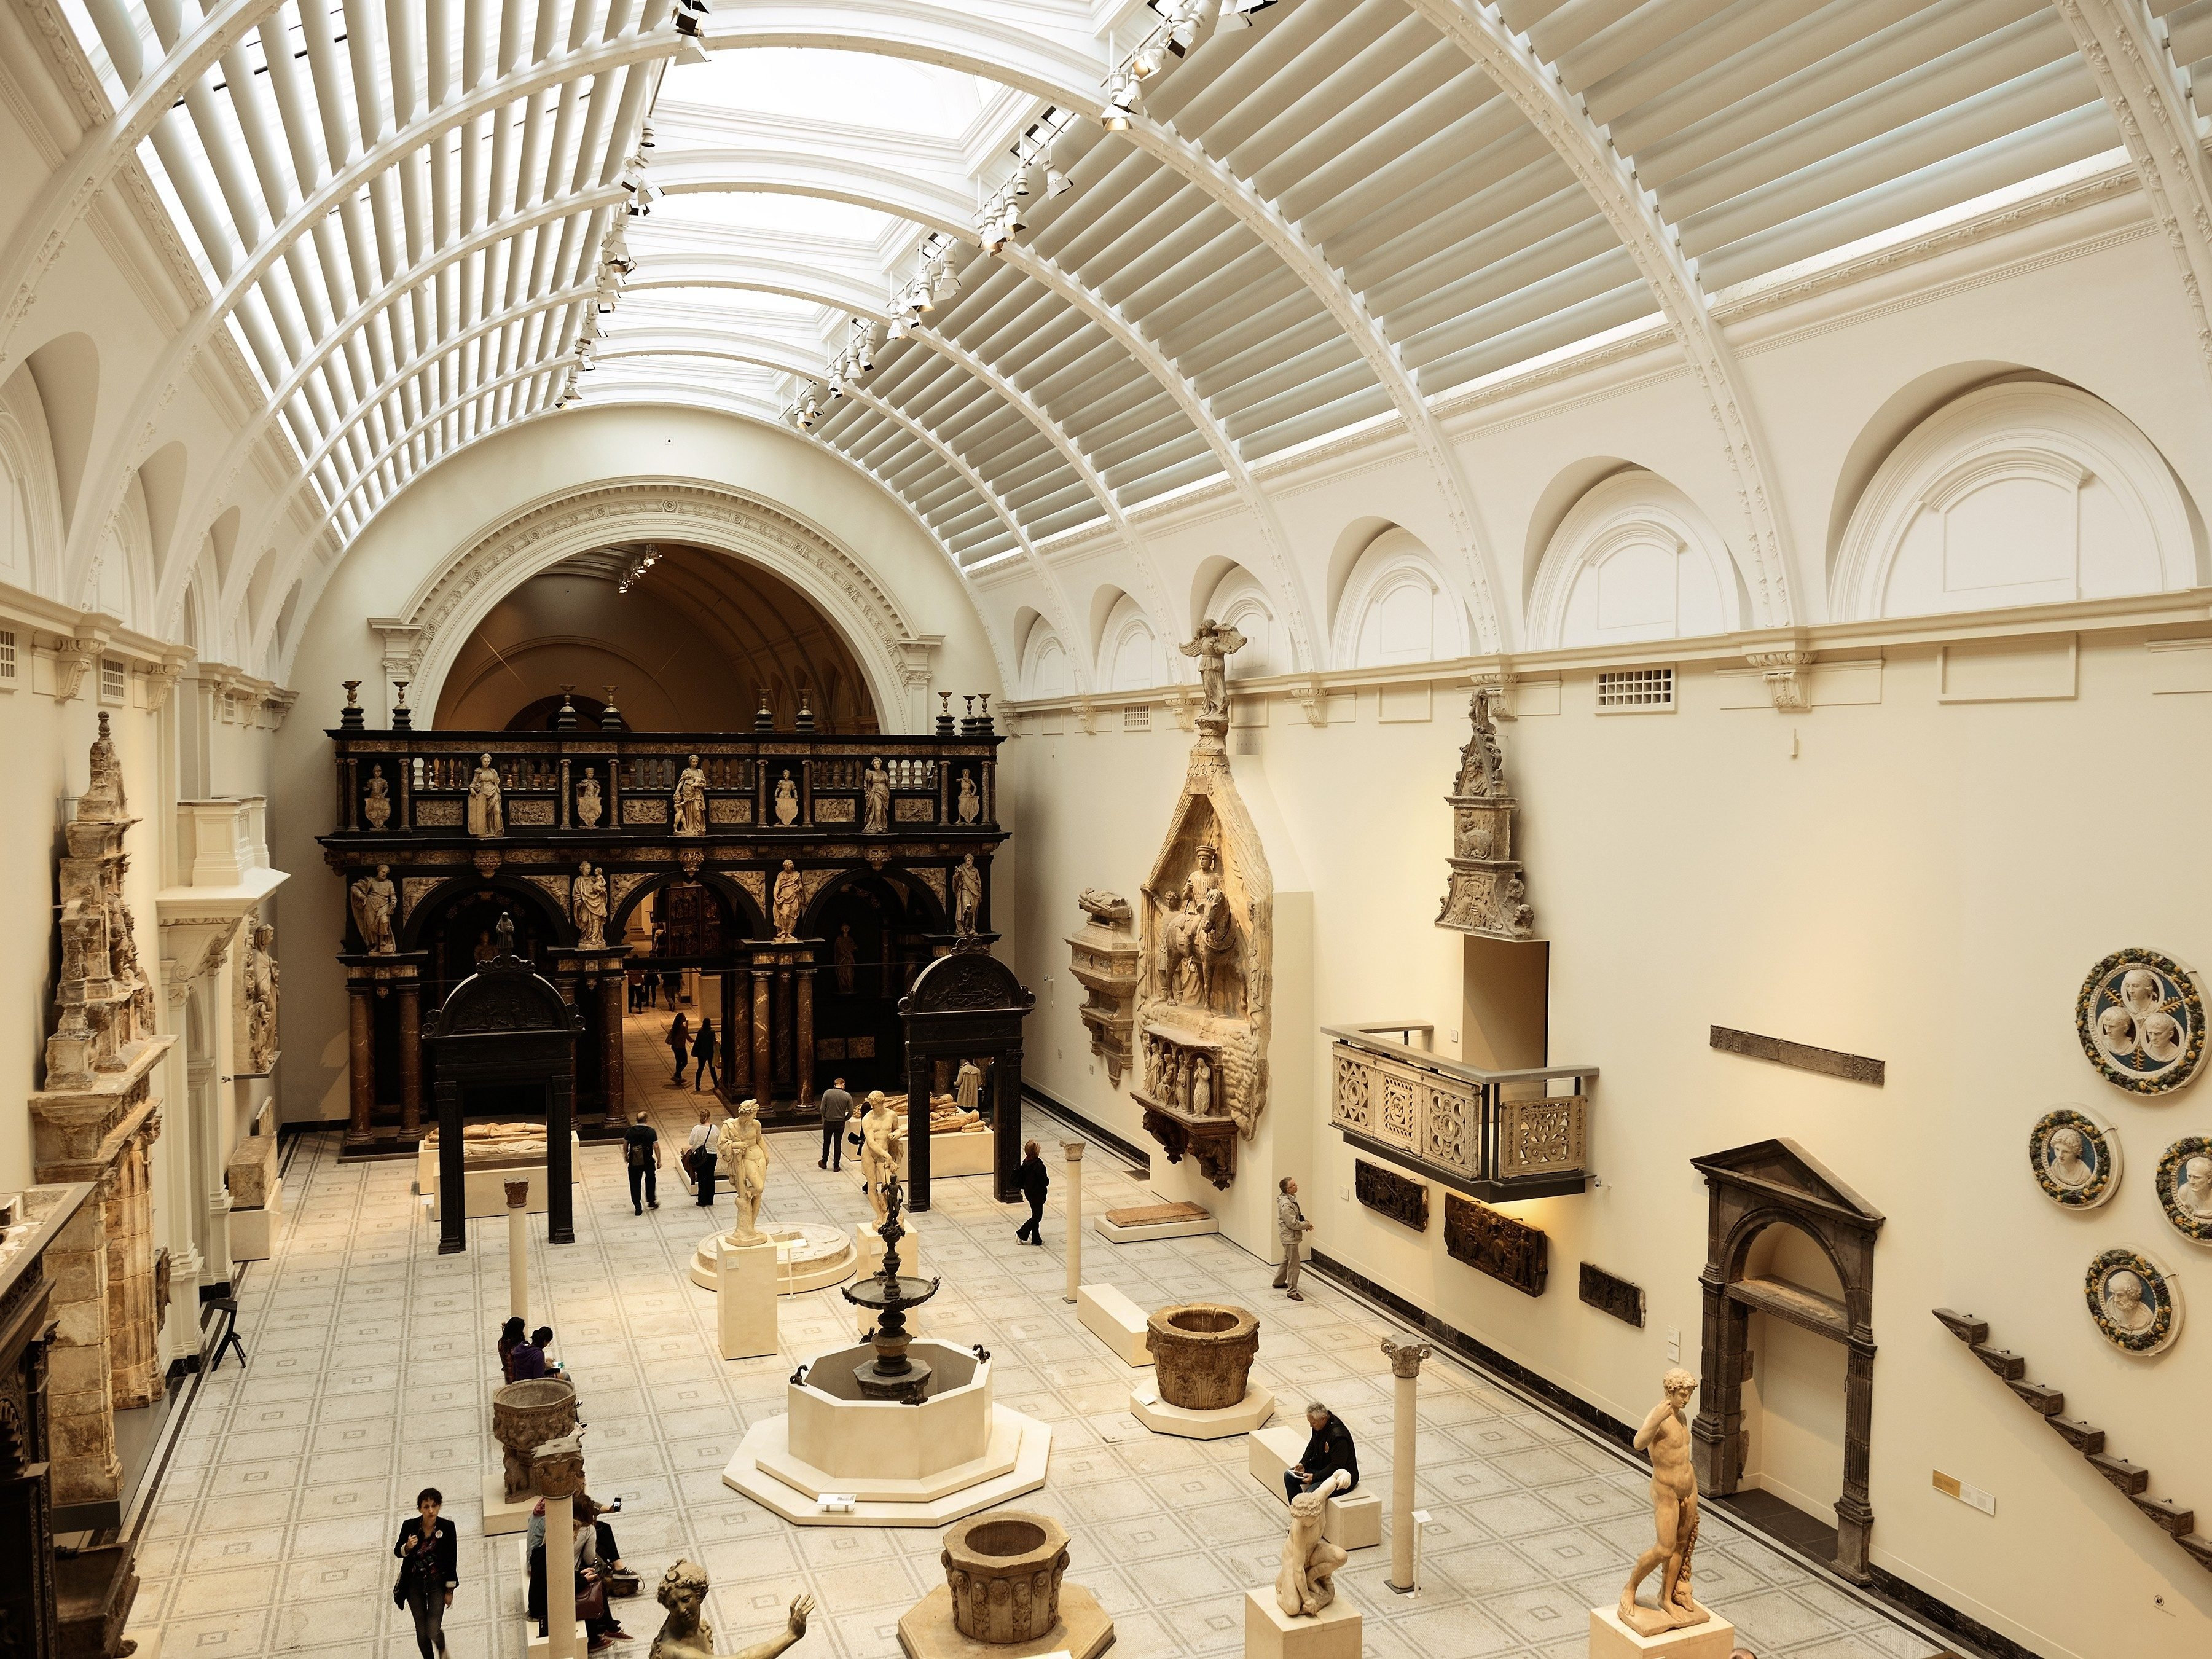 London attractions: Victoria and Albert Museum